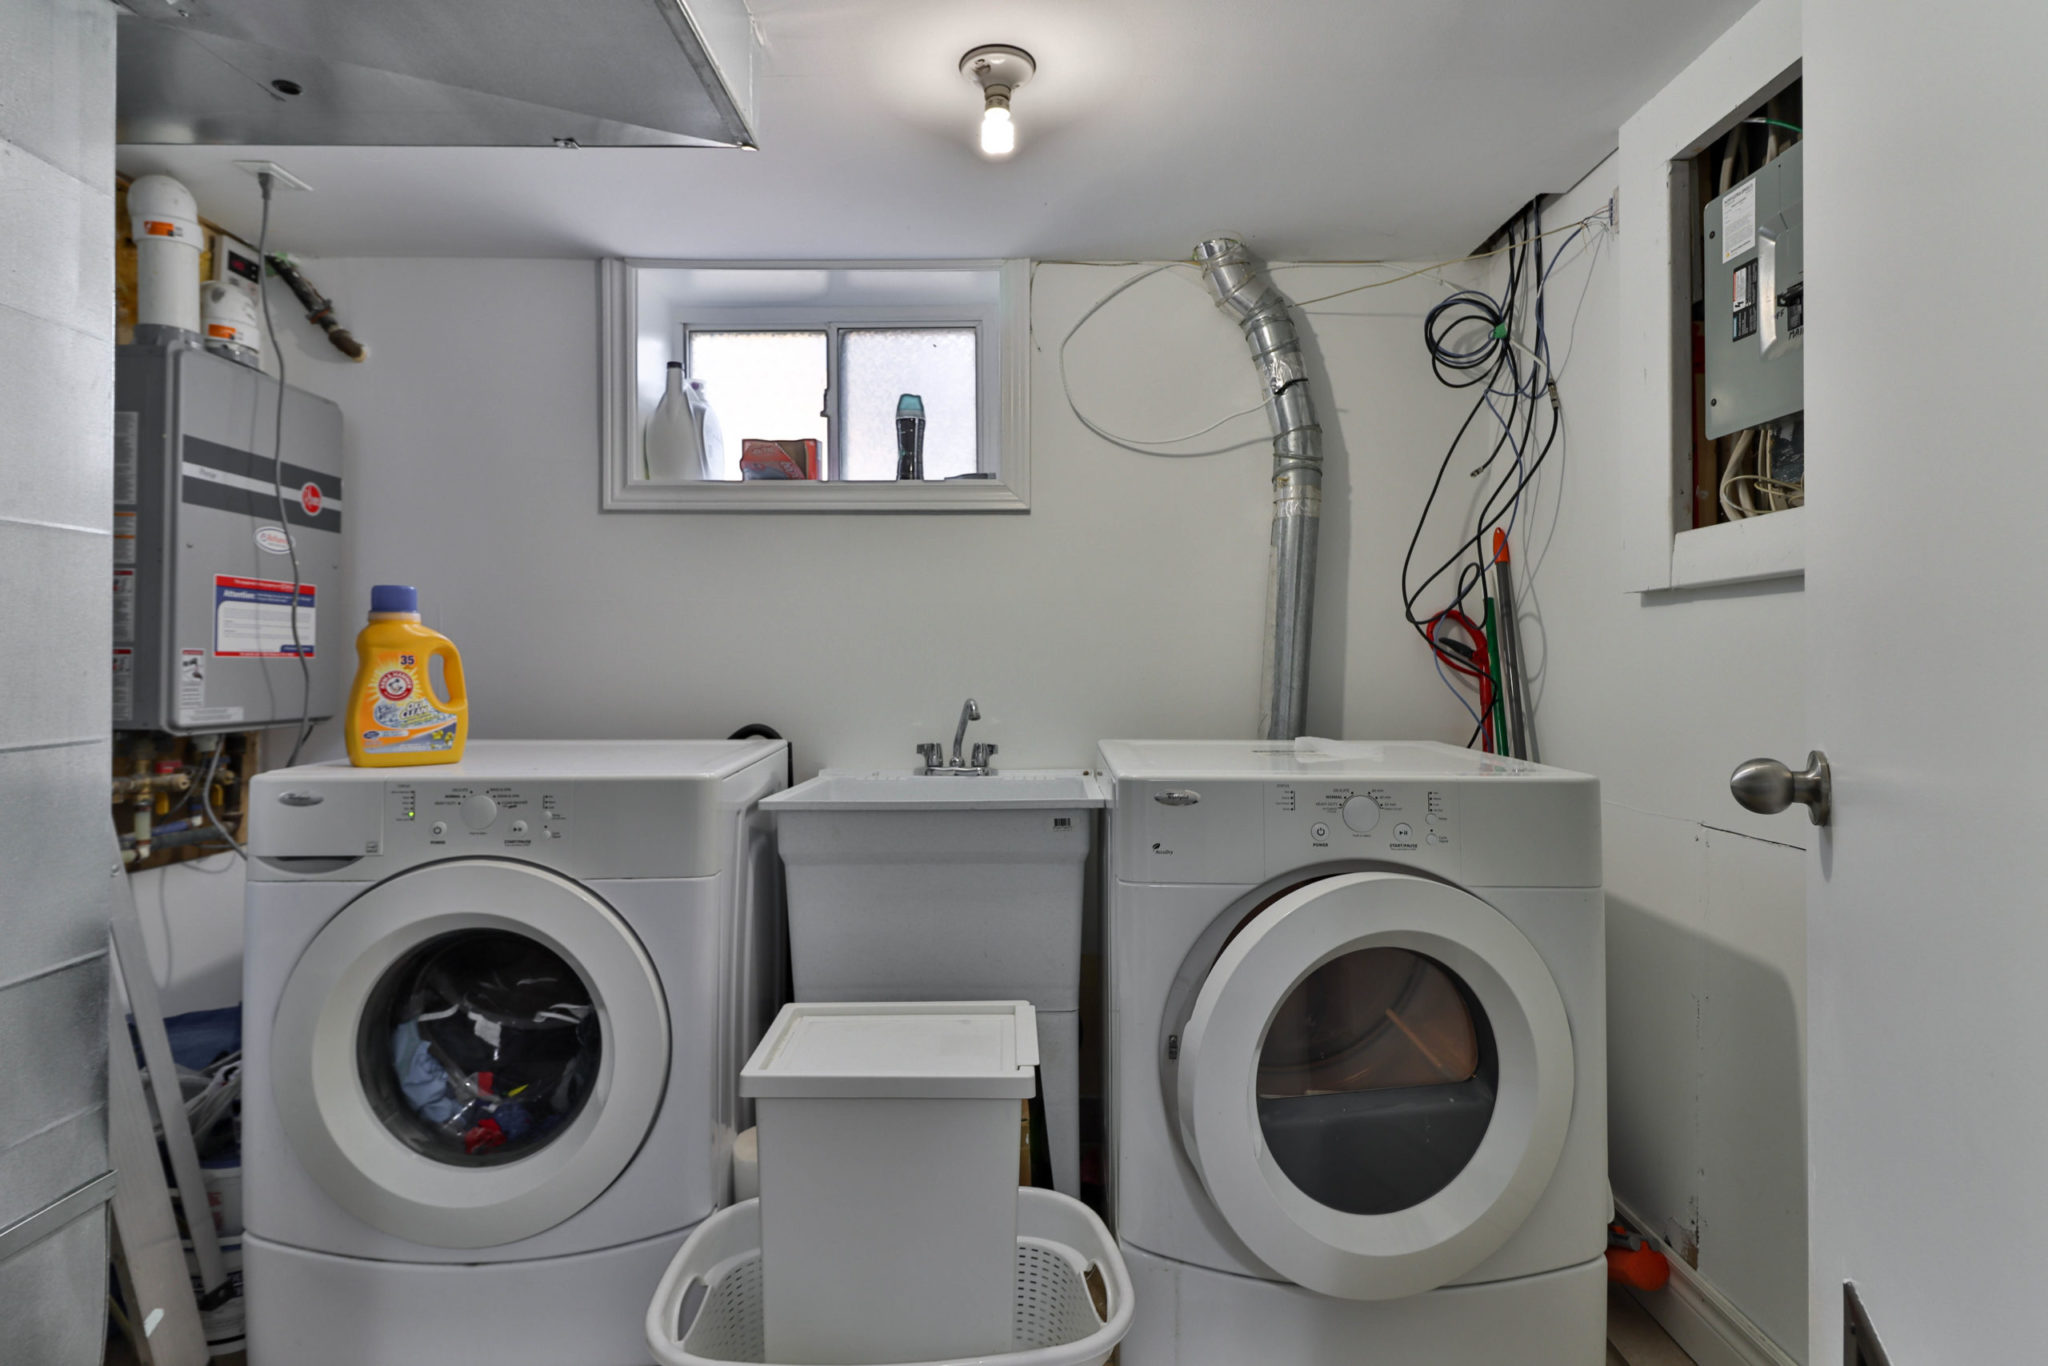 Laundry room with white front loading washer and dryer by Whirlpool.